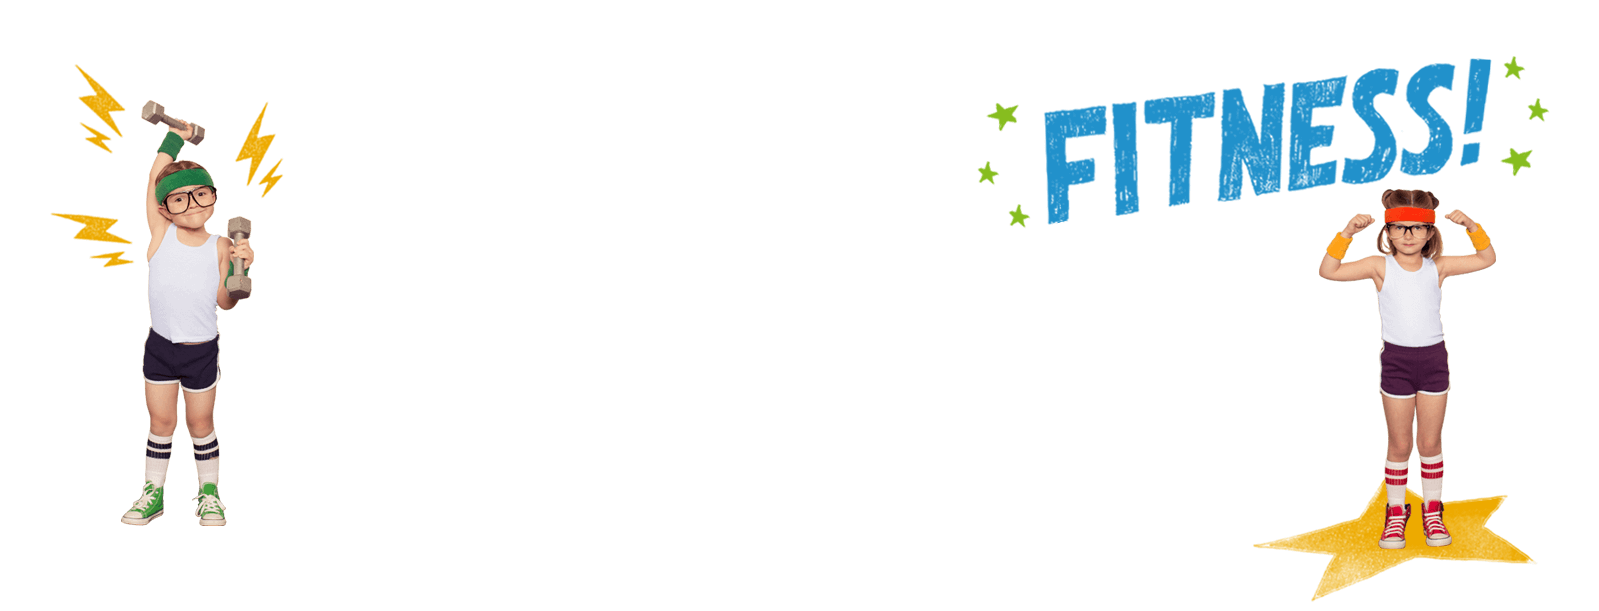 kids fitness png